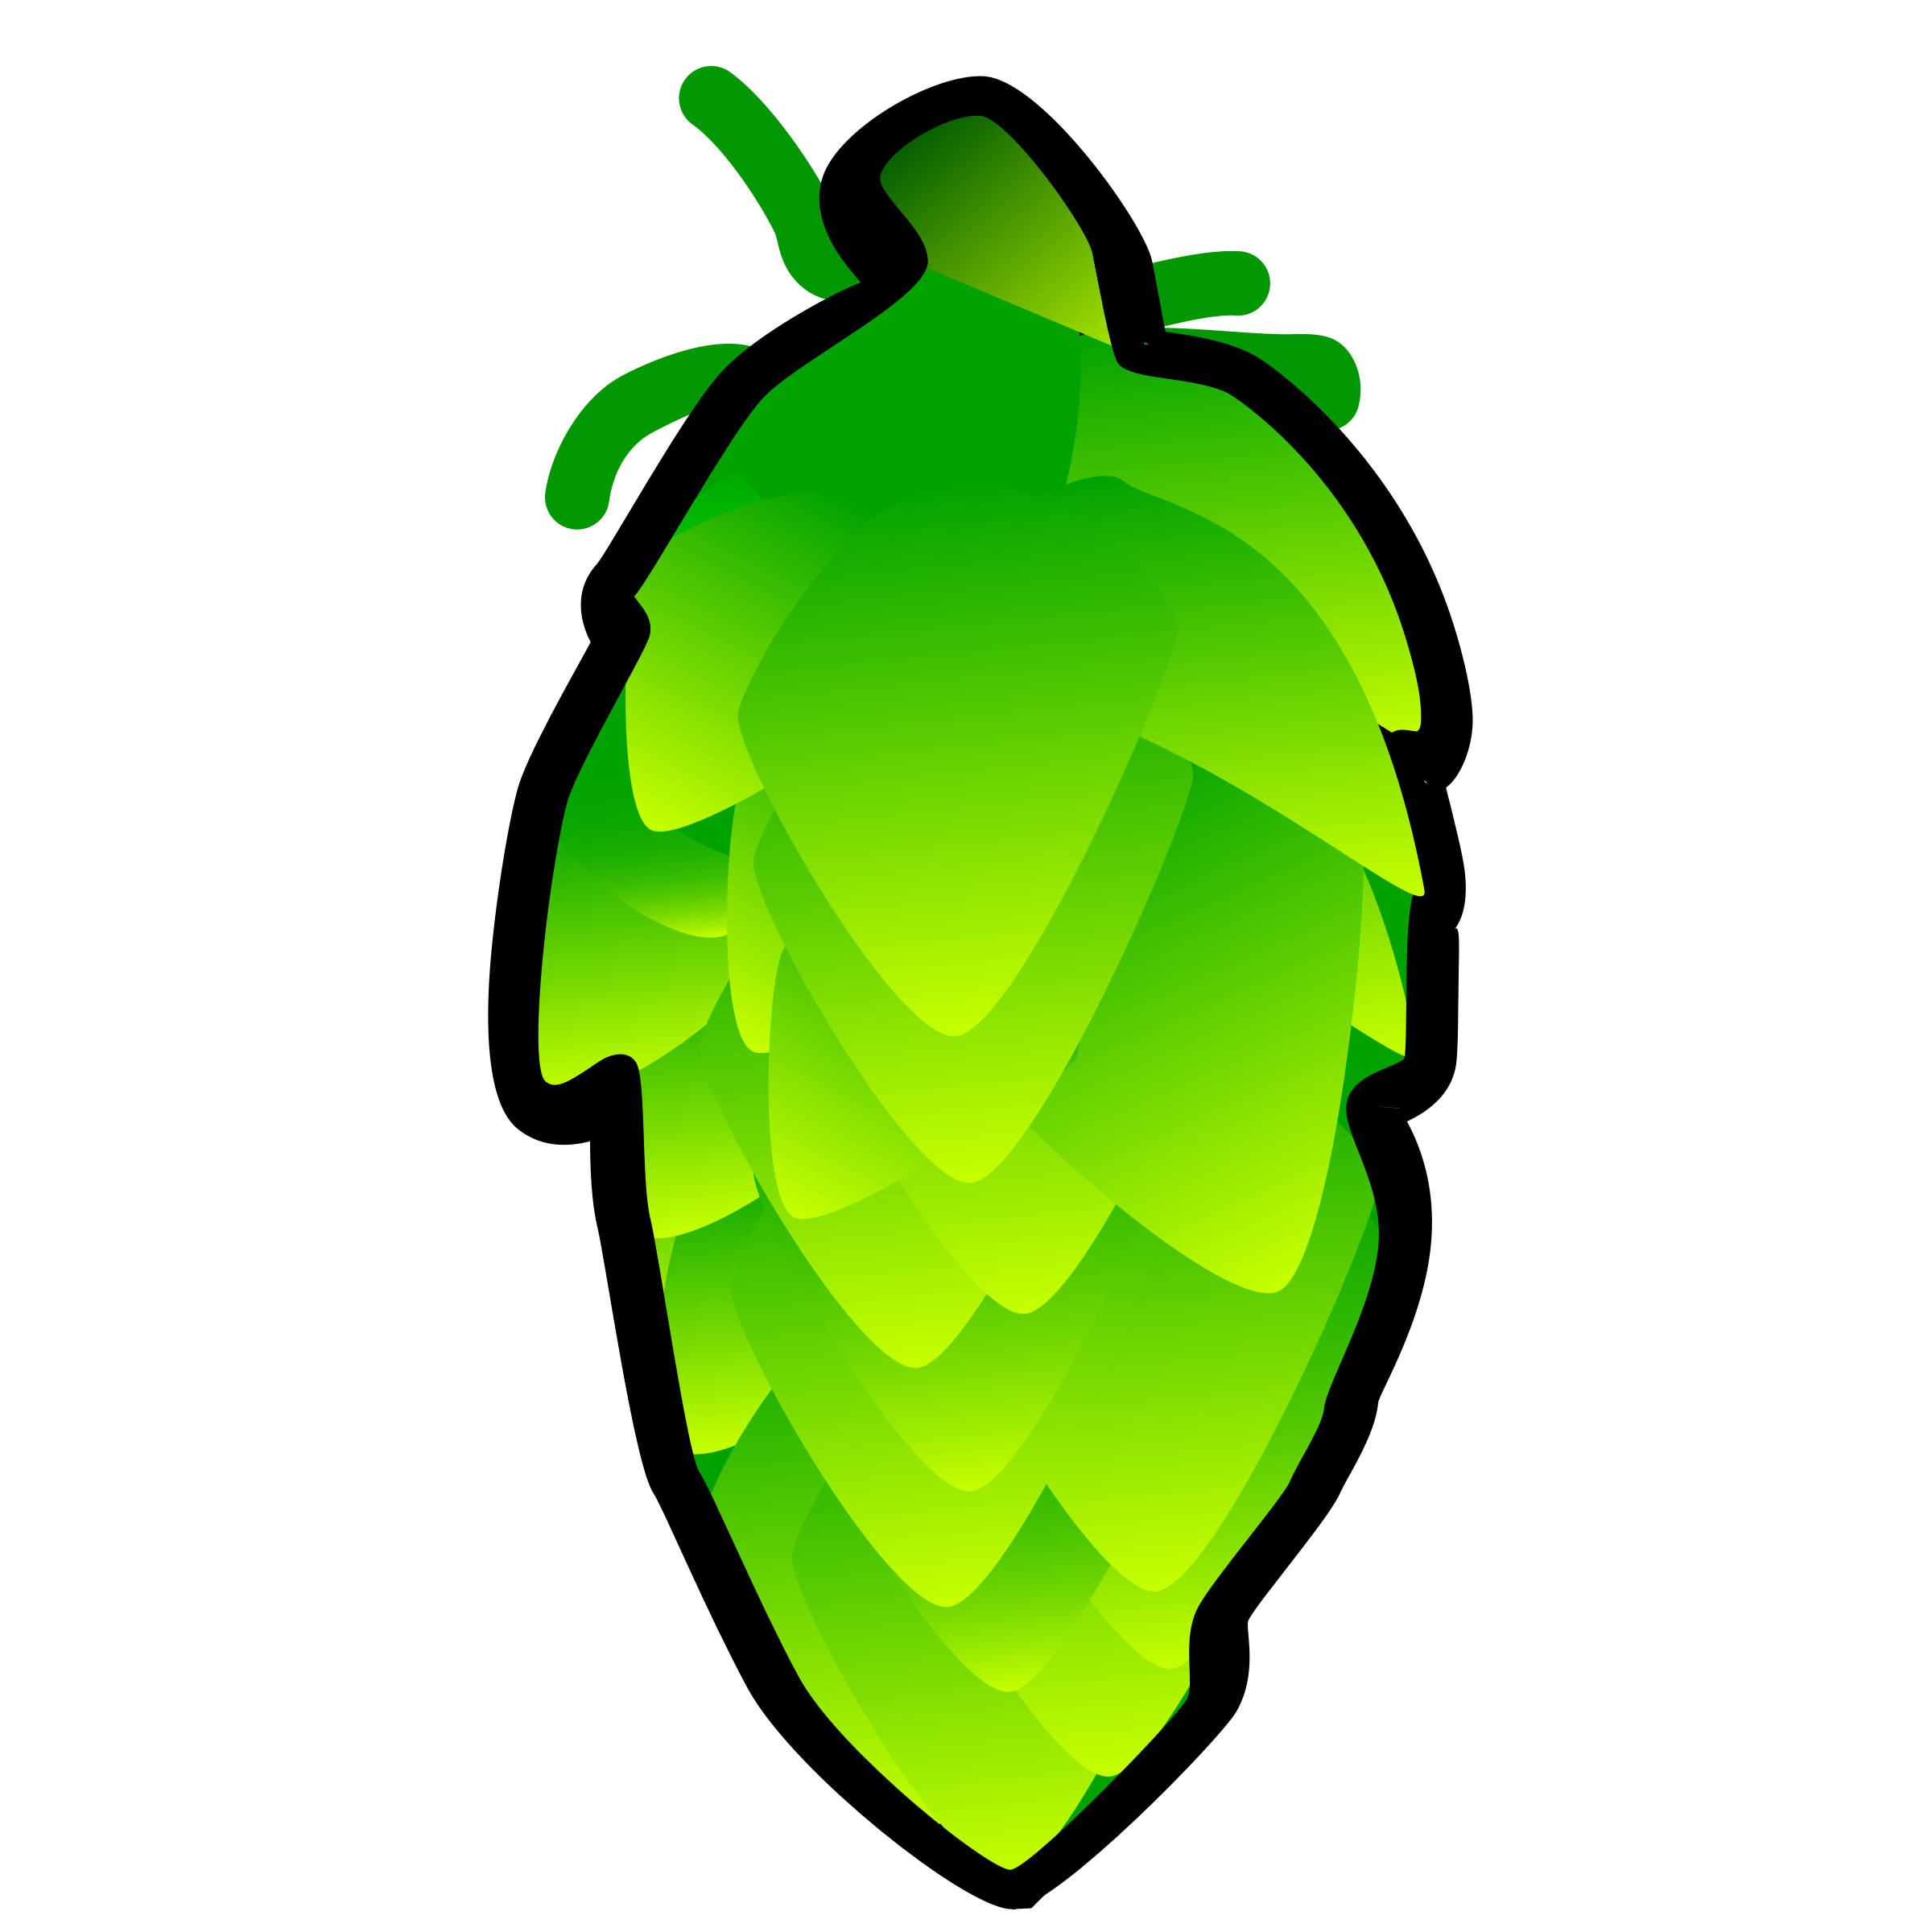 Hop Cone Illustration by qubit